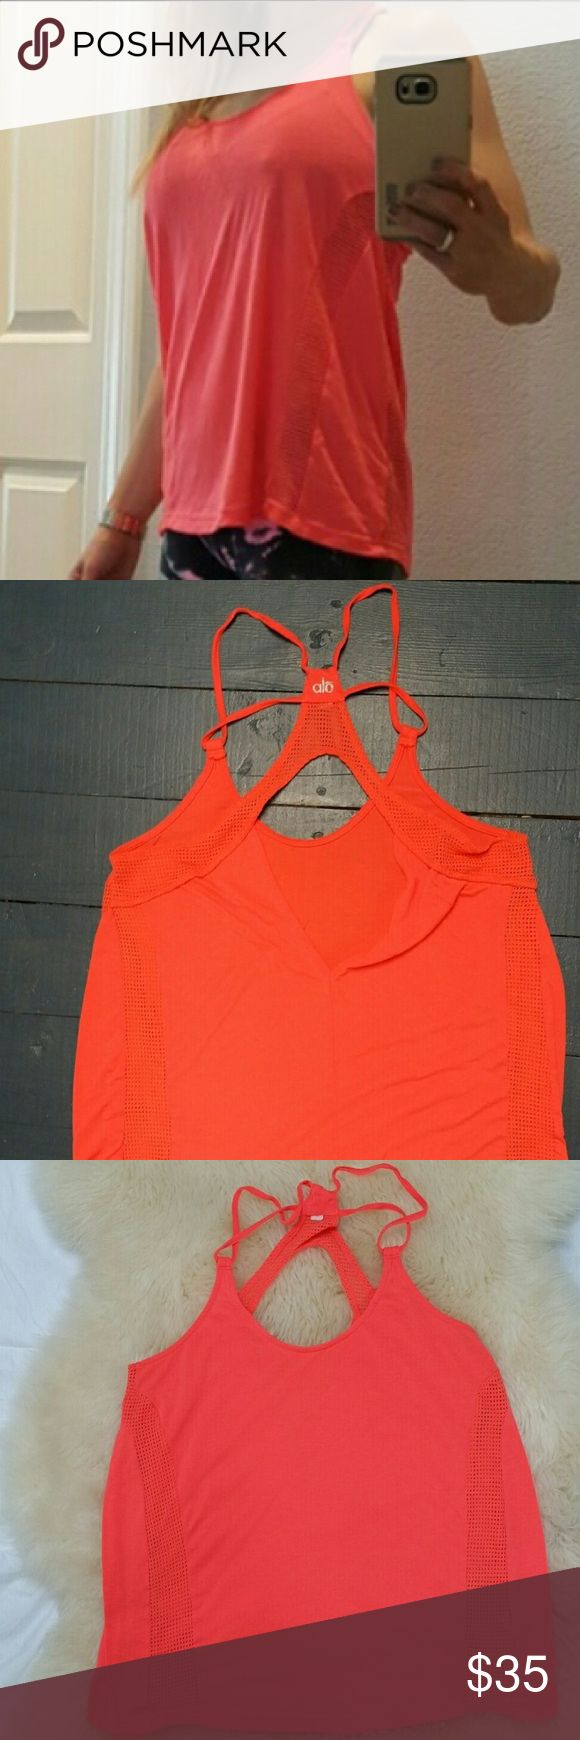 ALO Yoga💕Mesh Flowy Tank Orange Flowy Yoga Top M VGUC size medium flowy tank by ALO yoga with mesh detailing to keep you cool. Gorgeous fluorescent orange color. Strappy design. 🚫trades // ✅bundle discounts available✅ #50111 ALO Yoga Tops Tank Tops